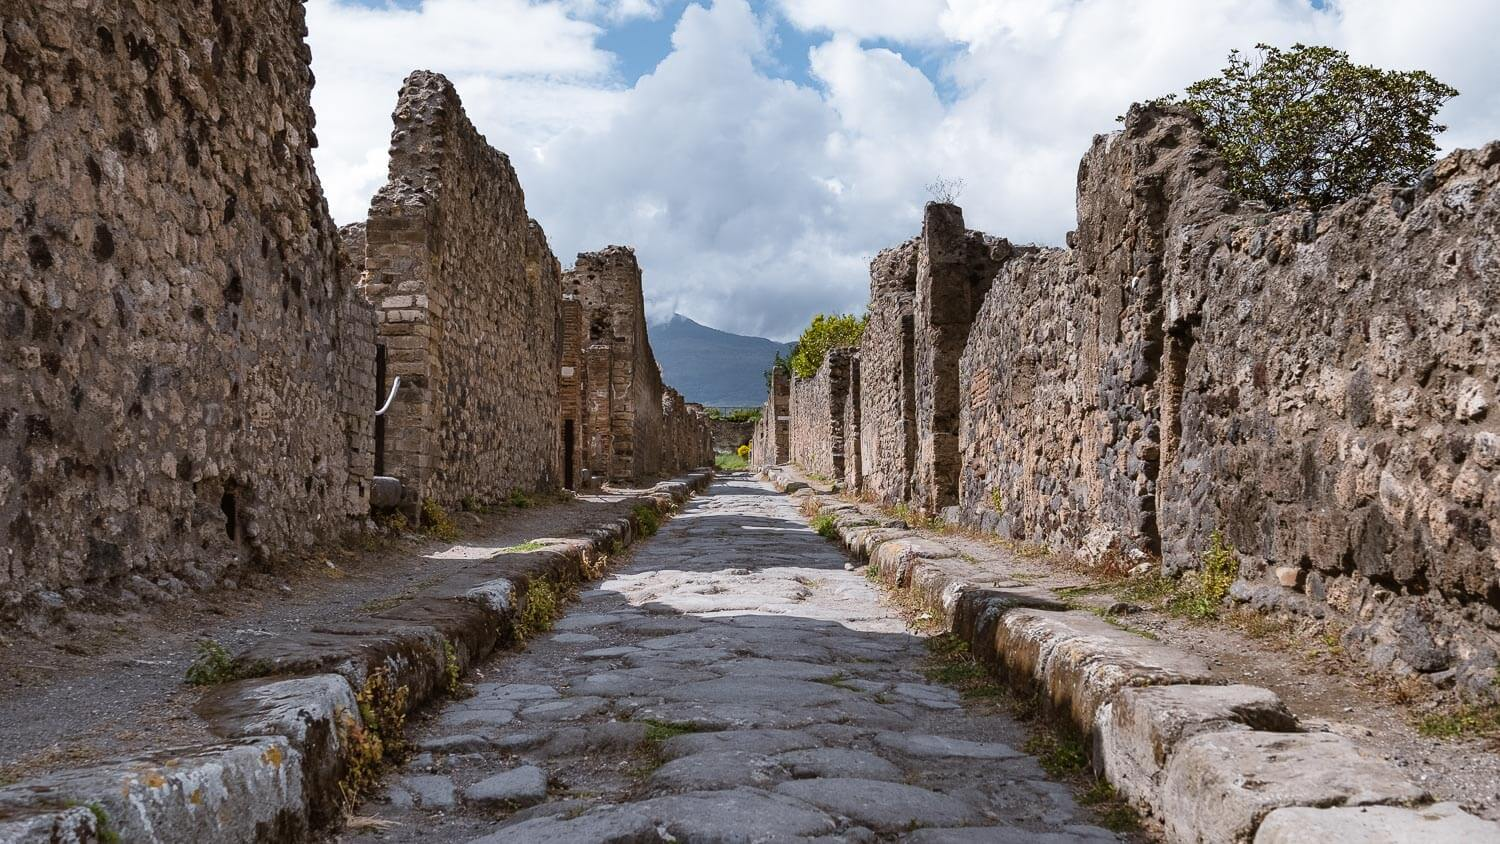 """Ancient roads of Pompeii. Travel photography and guide by © Natasha Lequepeys for """"And Then I Met Yoko"""". #pompeii #italy #fujifilm #travelphotography"""